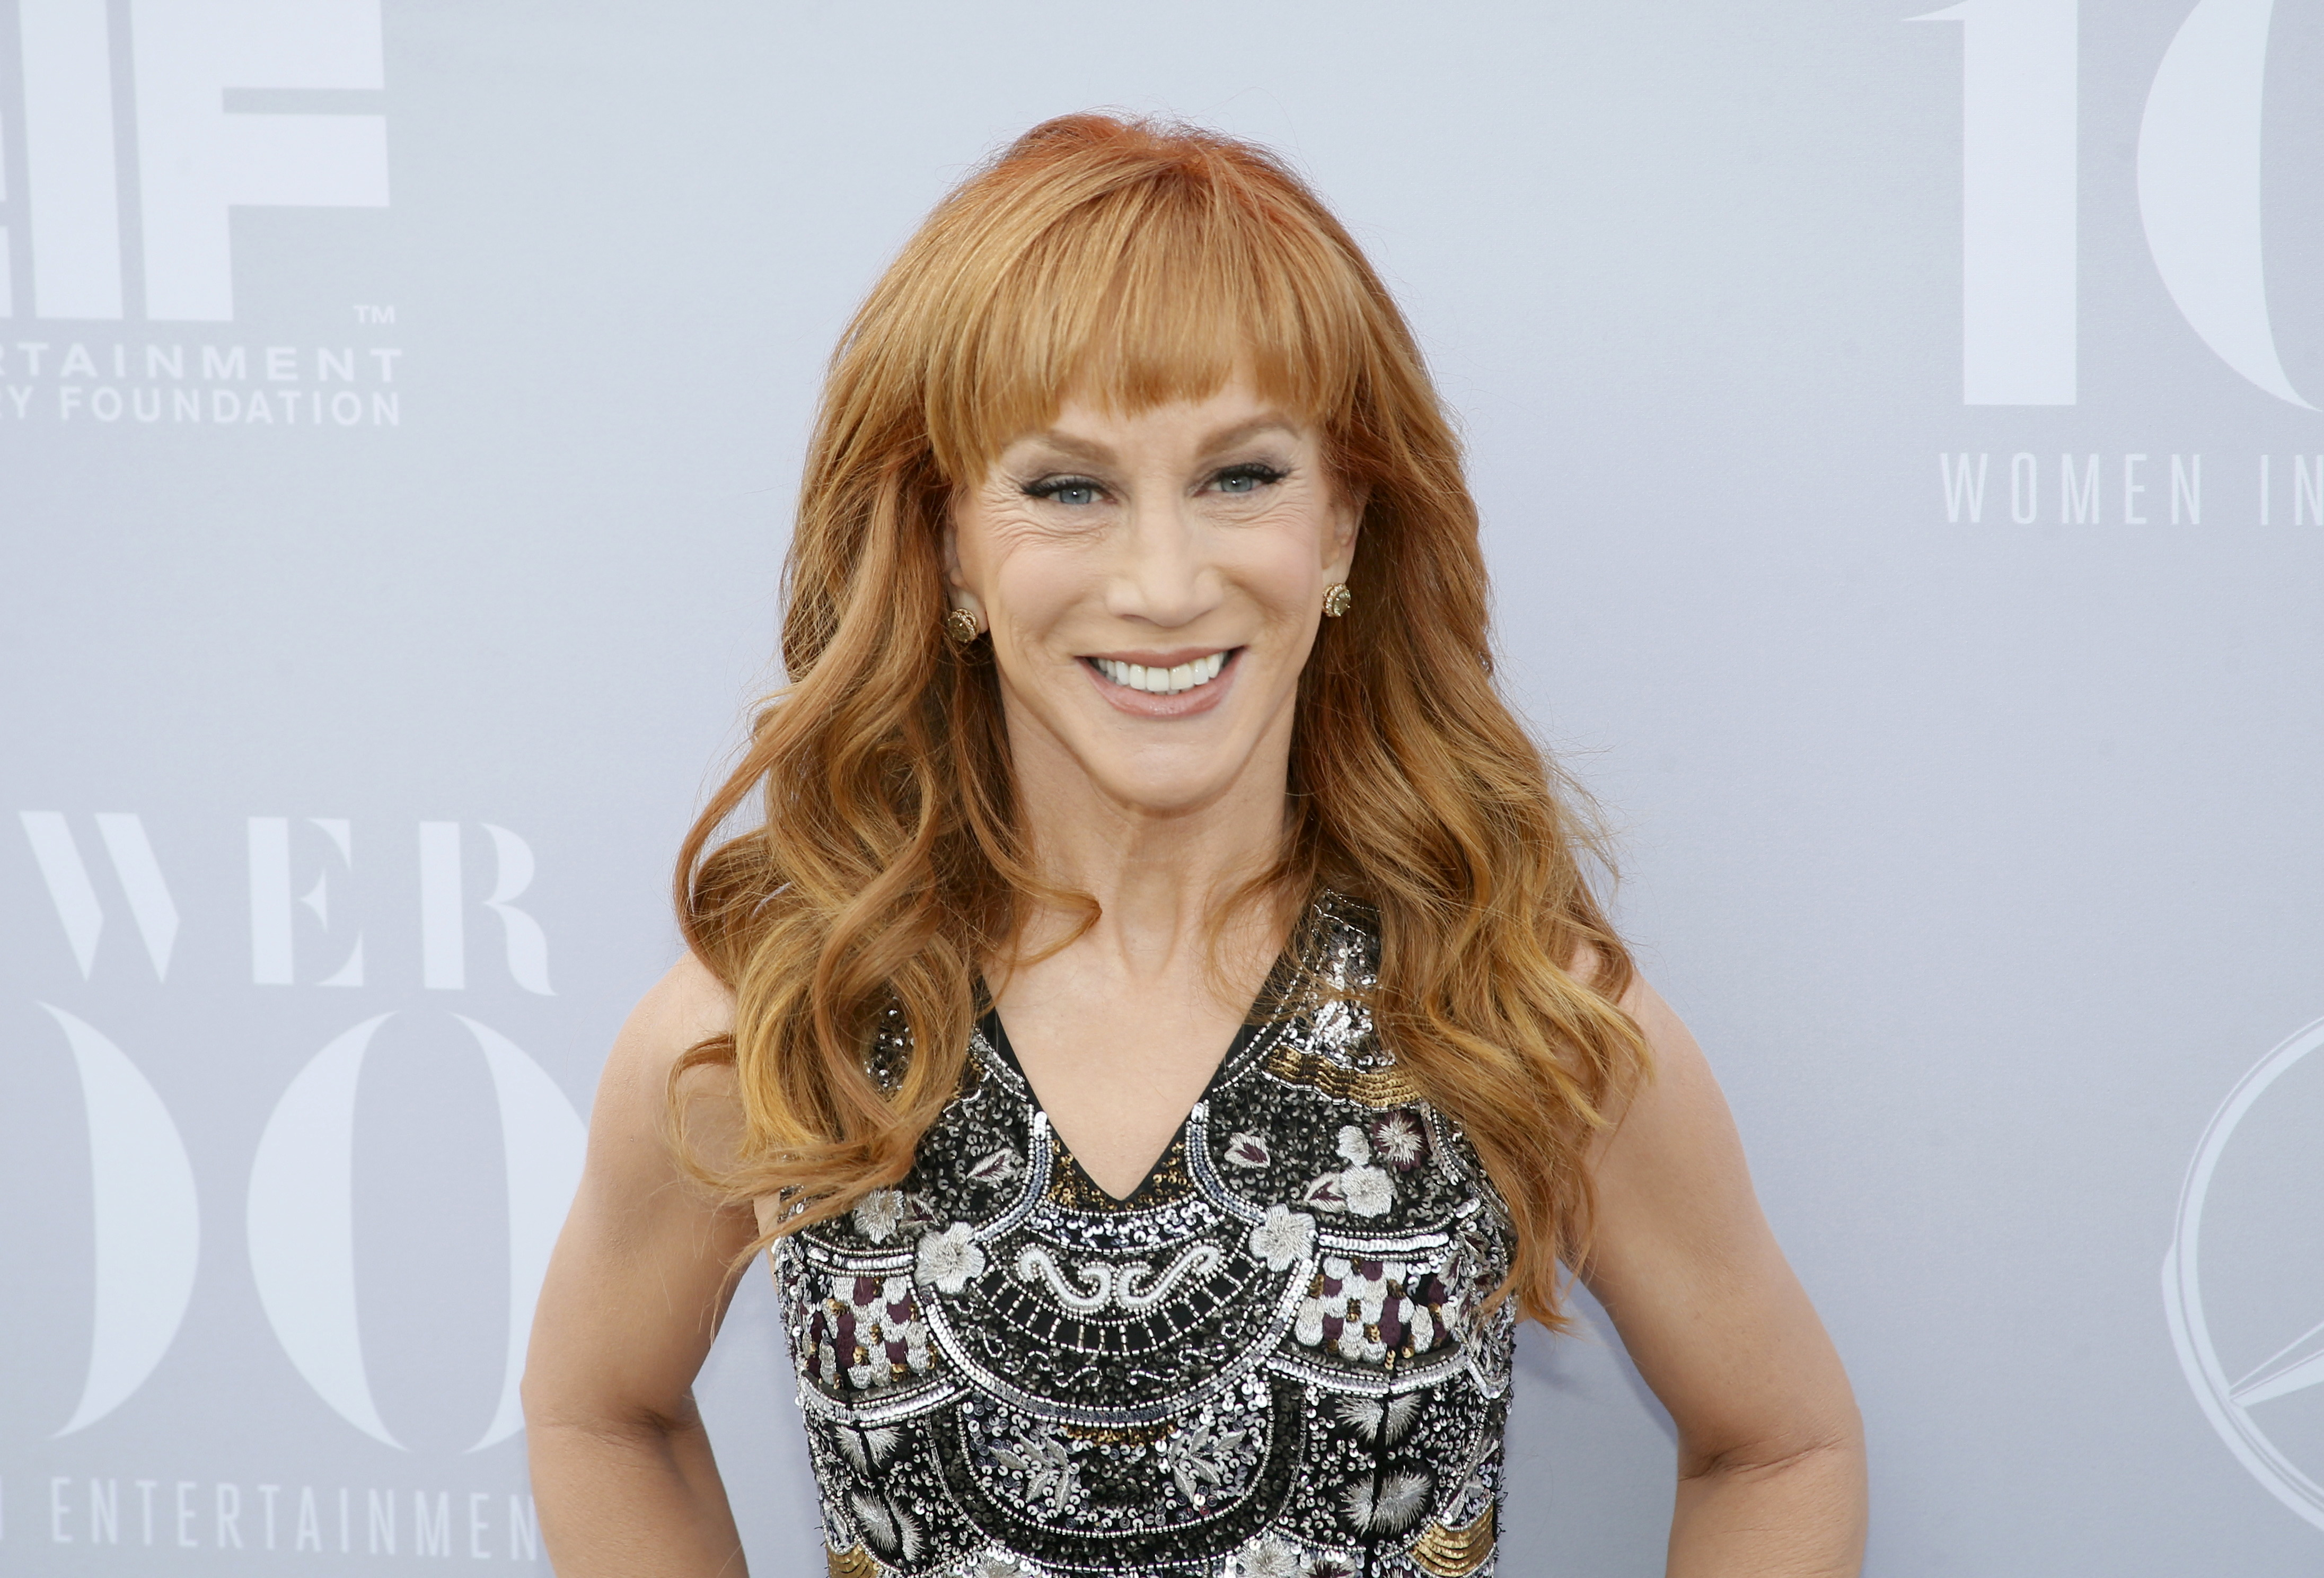 Comedian Kathy Griffin poses at The Hollywood Reporter's Annual Women in Entertainment Breakfast in Los Angeles, California December 9, 2015. REUTERS/Danny Moloshok/File Photo